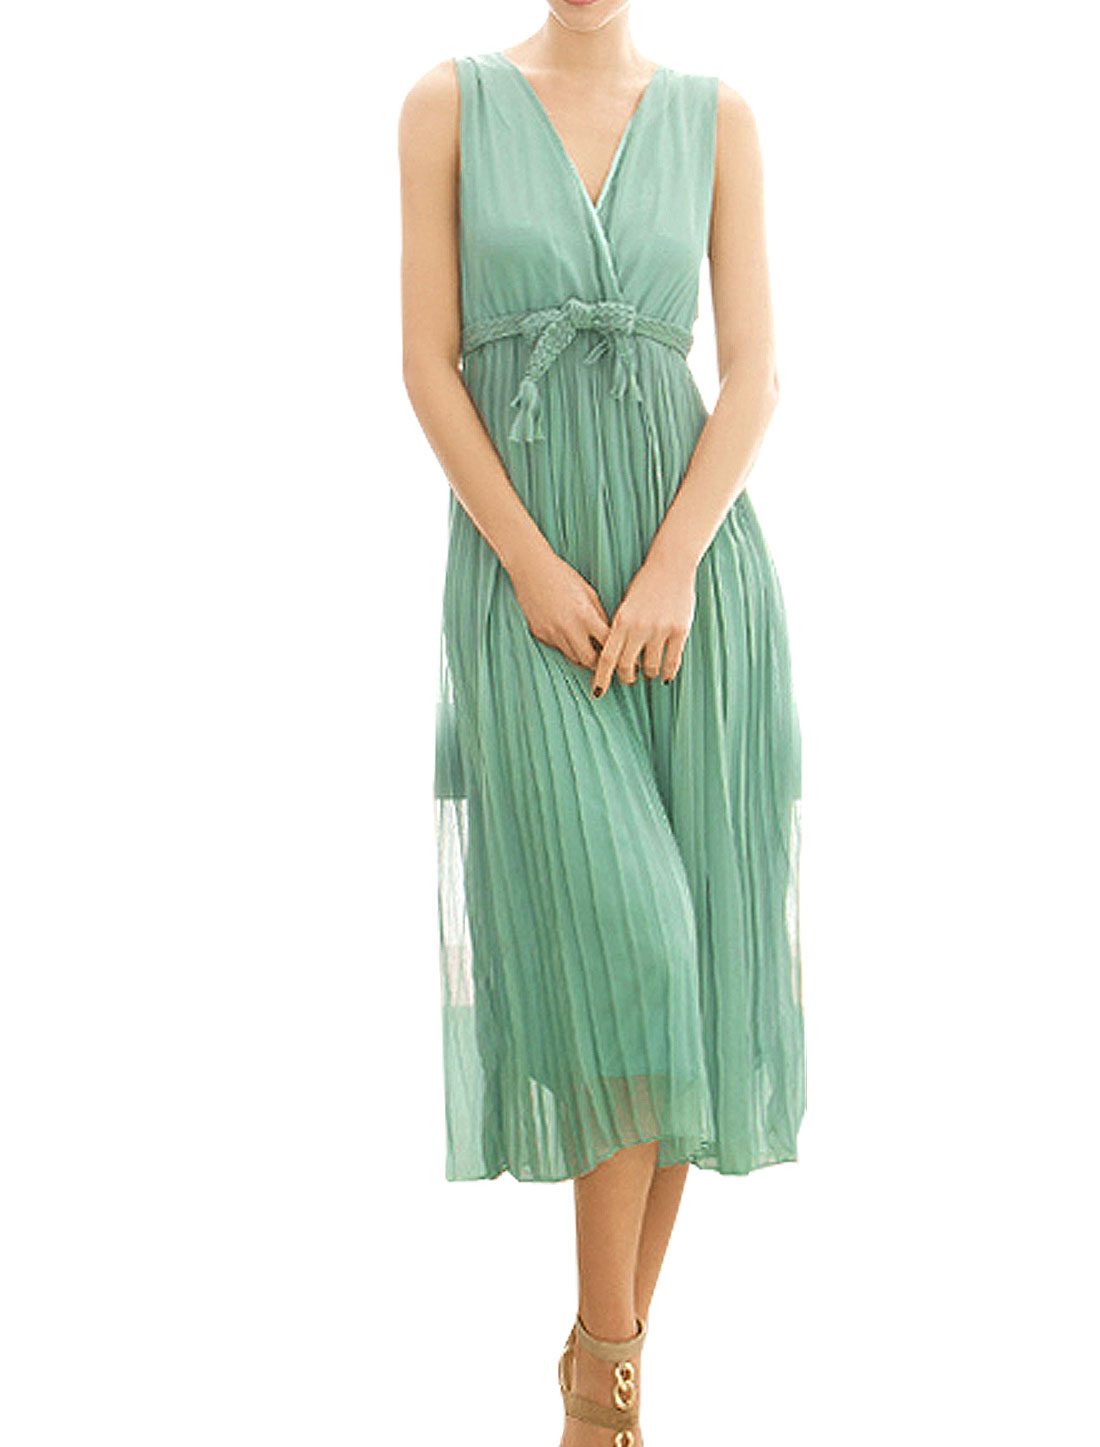 Sheath Waist Pullover Solid Green Long Chiffon Dress Size XS + Belt for Woman